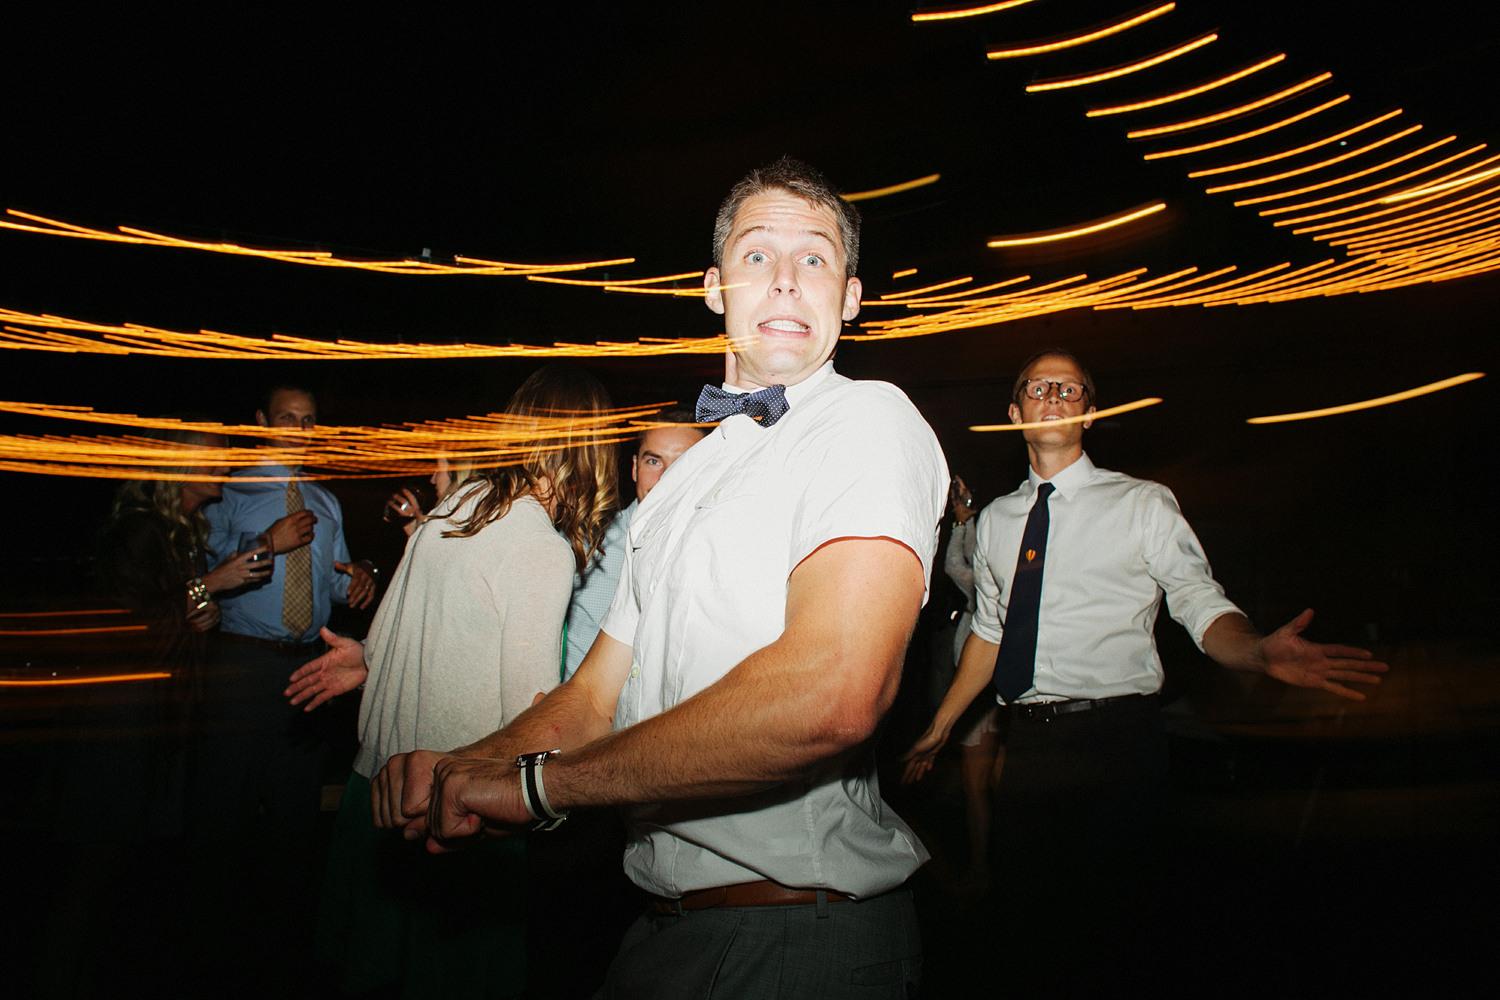 ryan-flynn-seattle-film-photographer-lake-chelan-wedding-0117.JPG